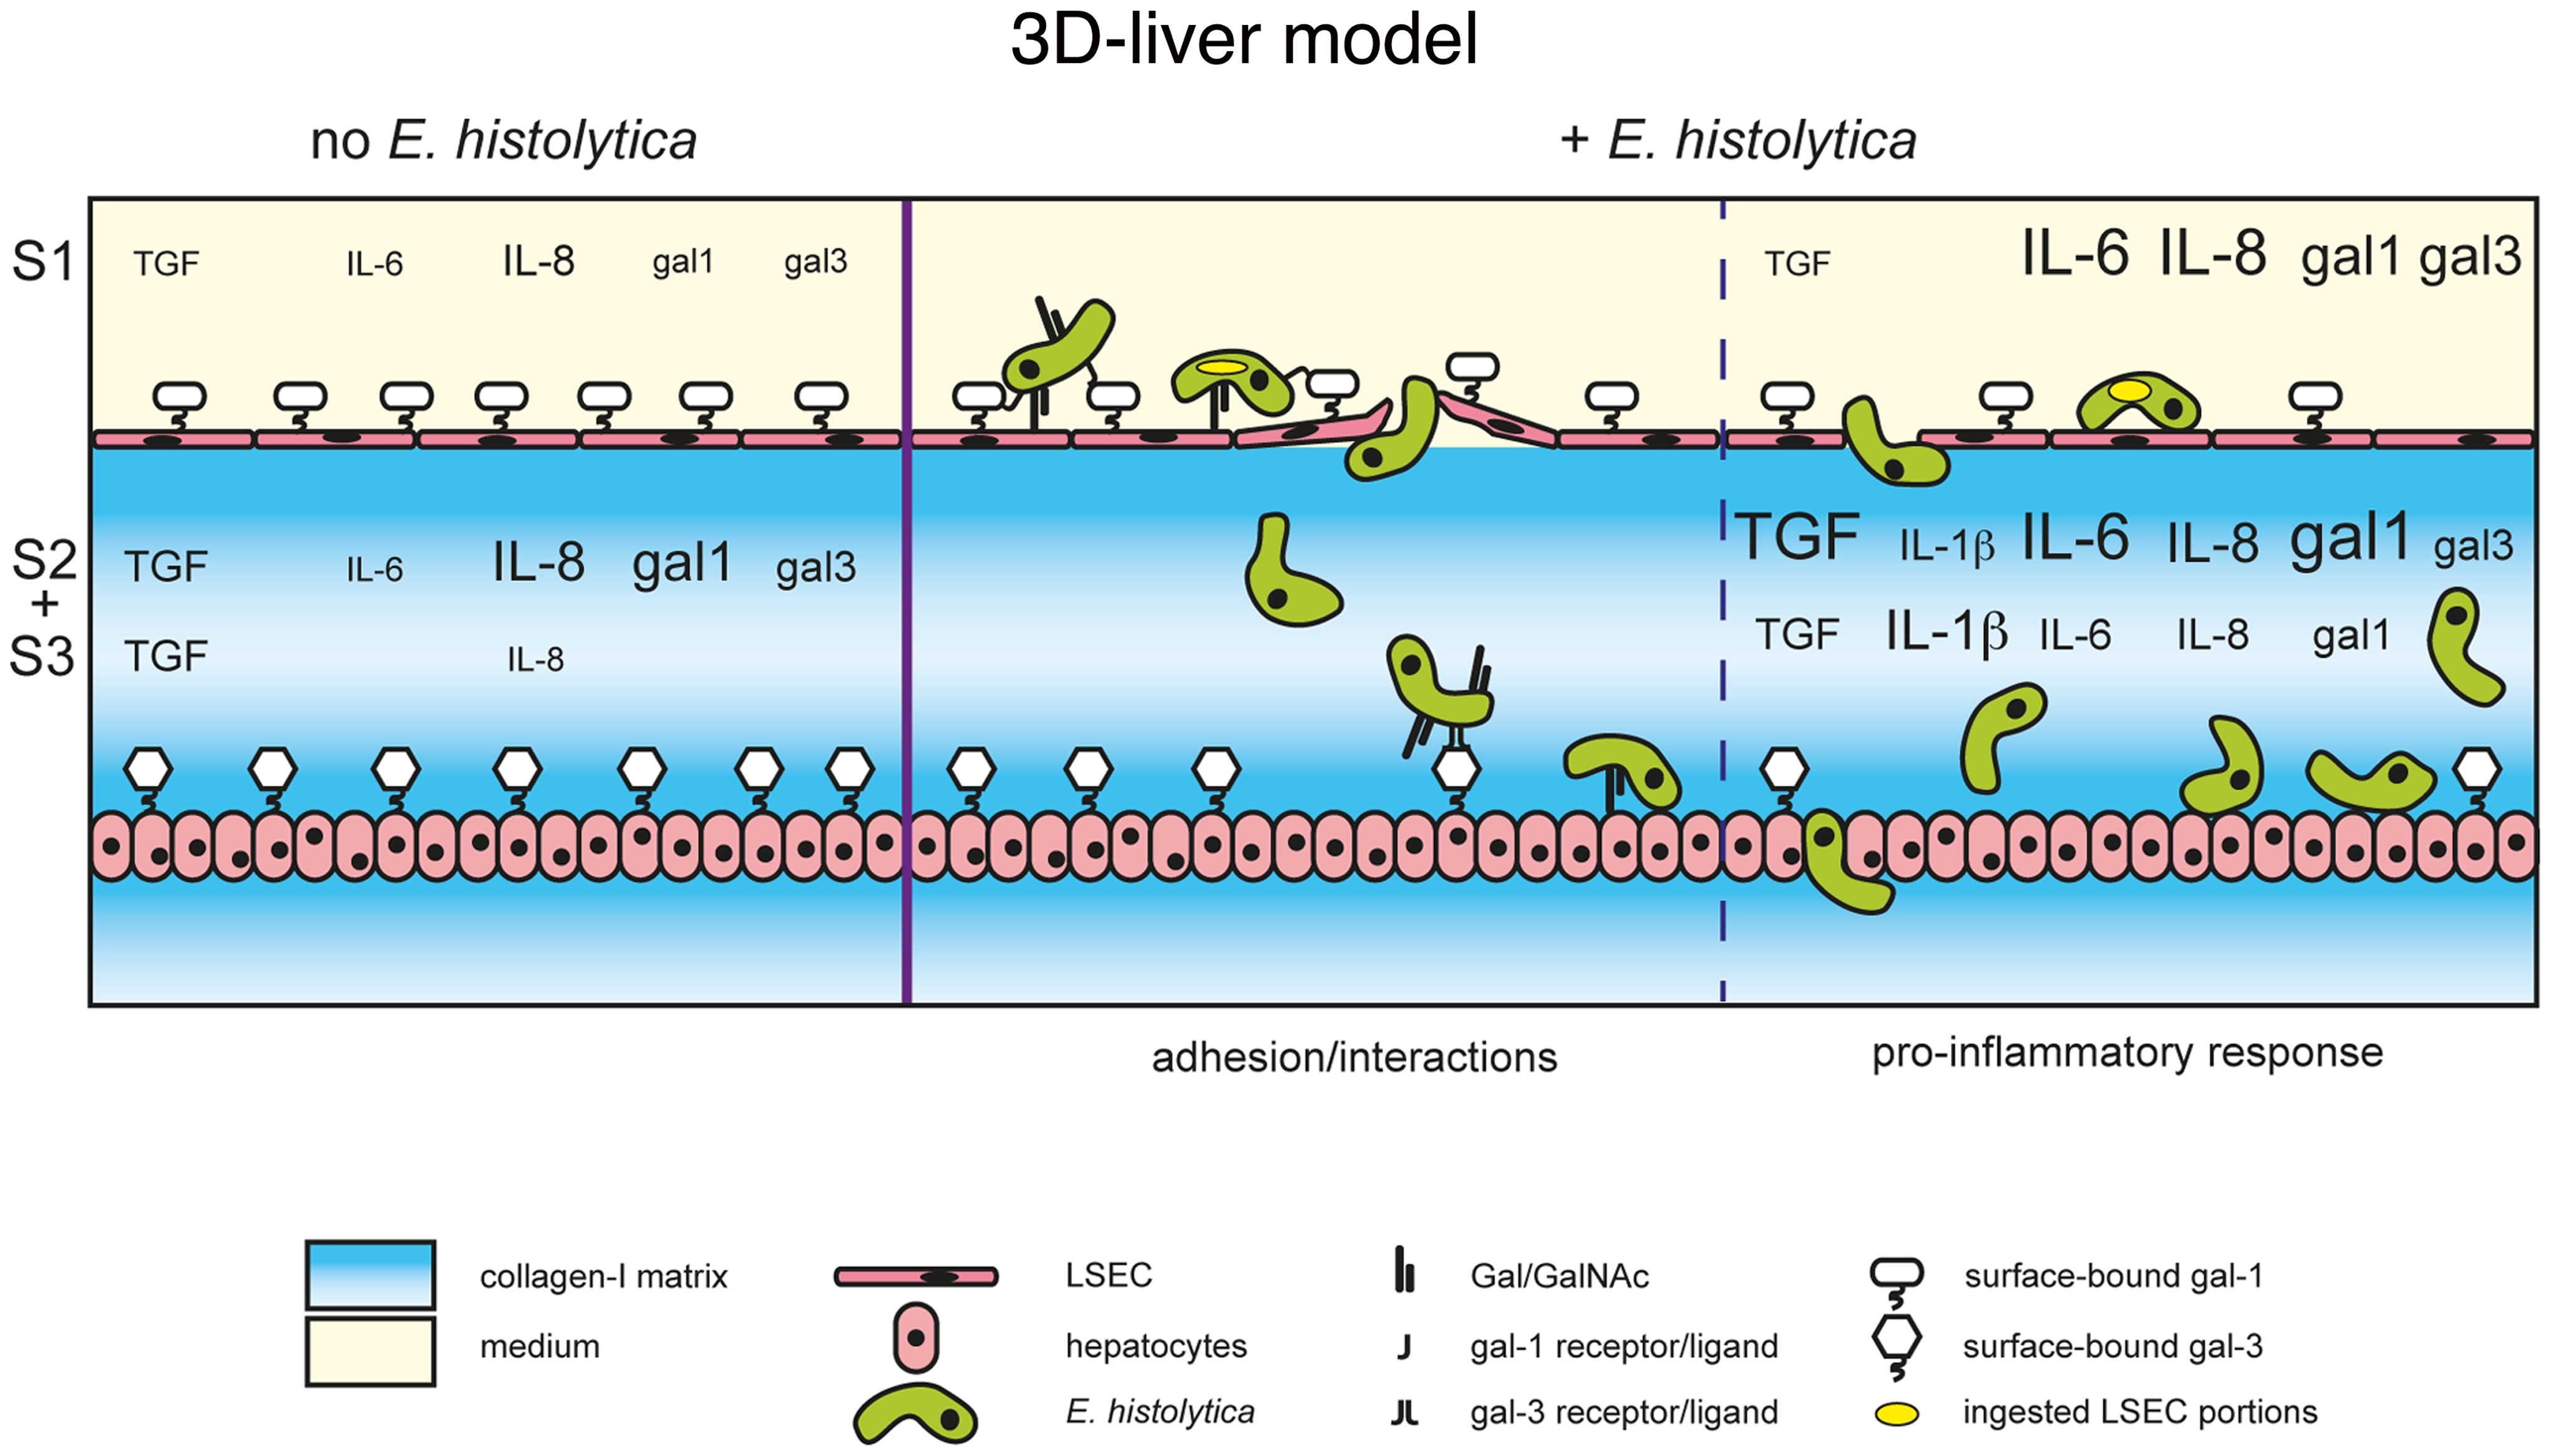 The human 3D-liver model, the dual role of galectin-1 and -3 during <i>E. histolytica</i> invasion.